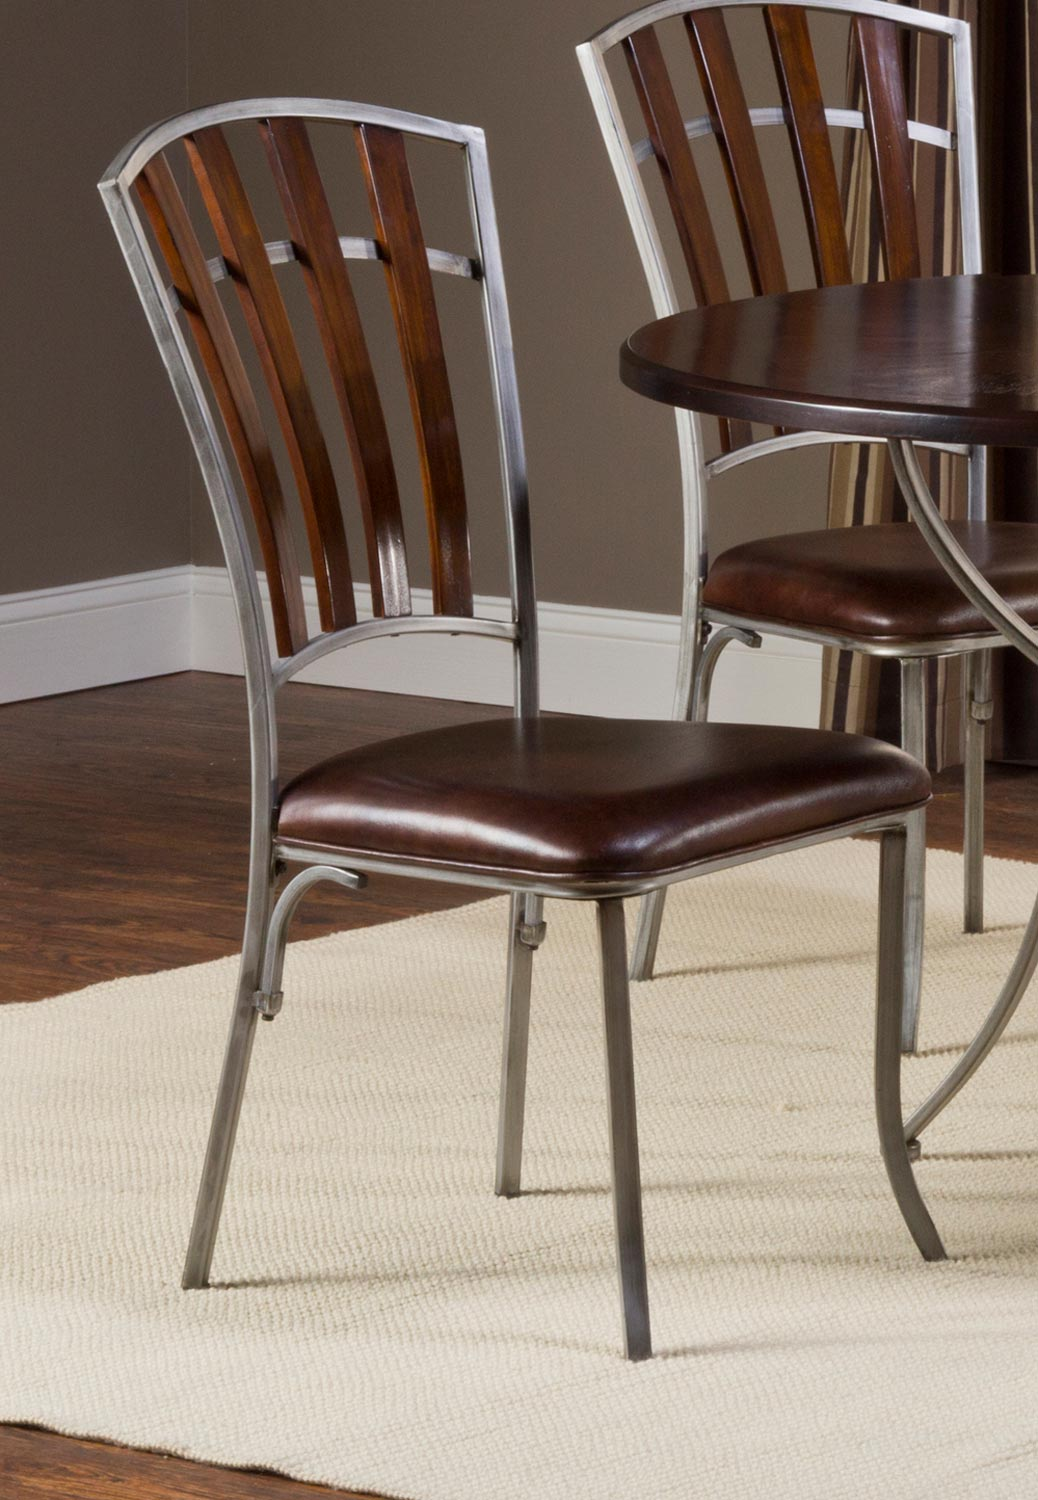 Hillsdale Sarasota Dining Chairs - Dark Walnut